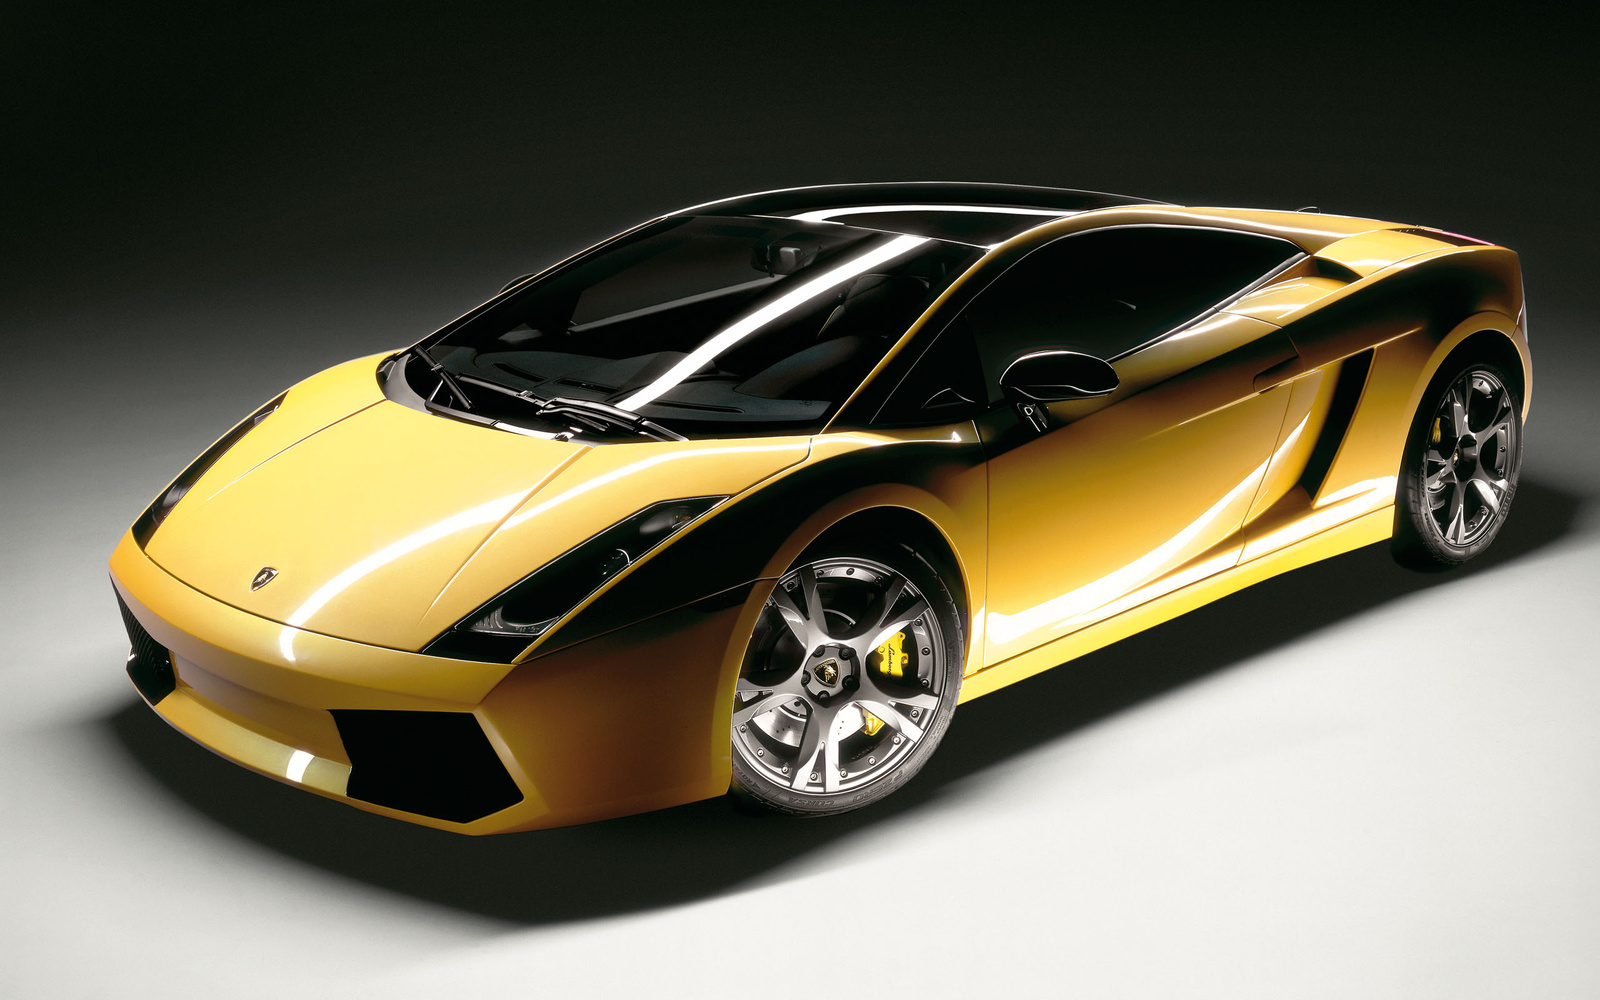 Picture of 2005 Lamborghini Gallardo